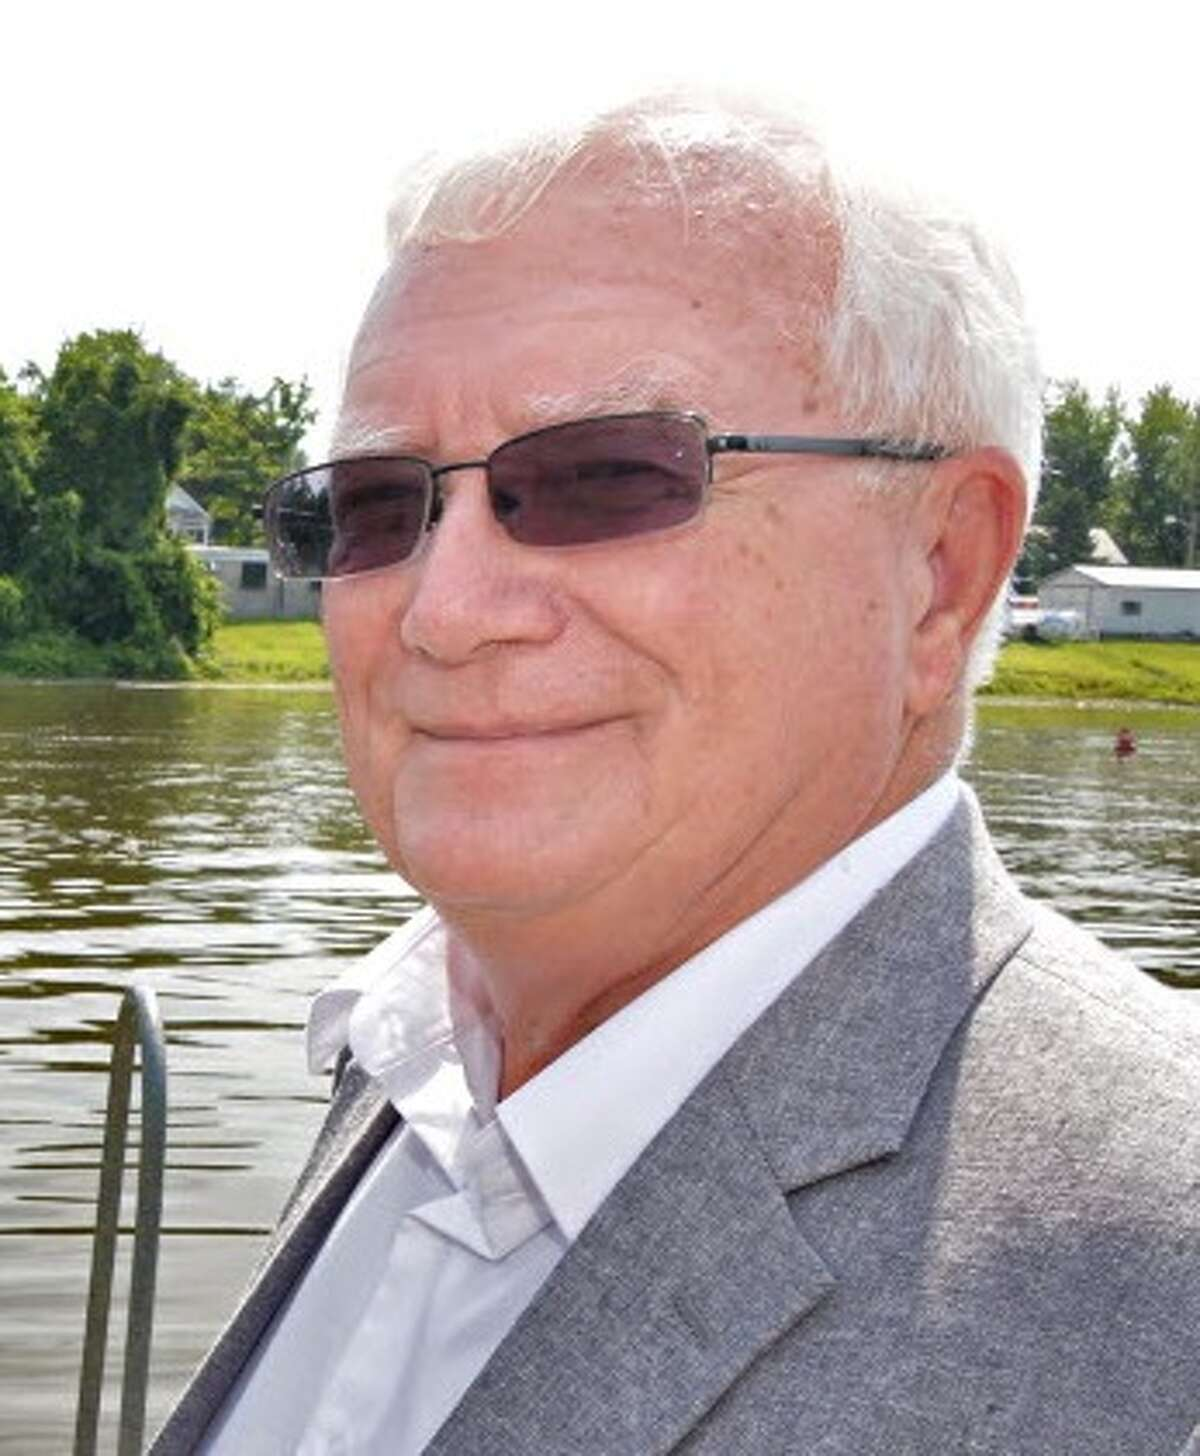 Mechanicville Mayor Dennis Baker criticized the state Department of Labor for charging the city a portion of the unemployment for two workers who lost jobs elsewhere but are still employed by the city.